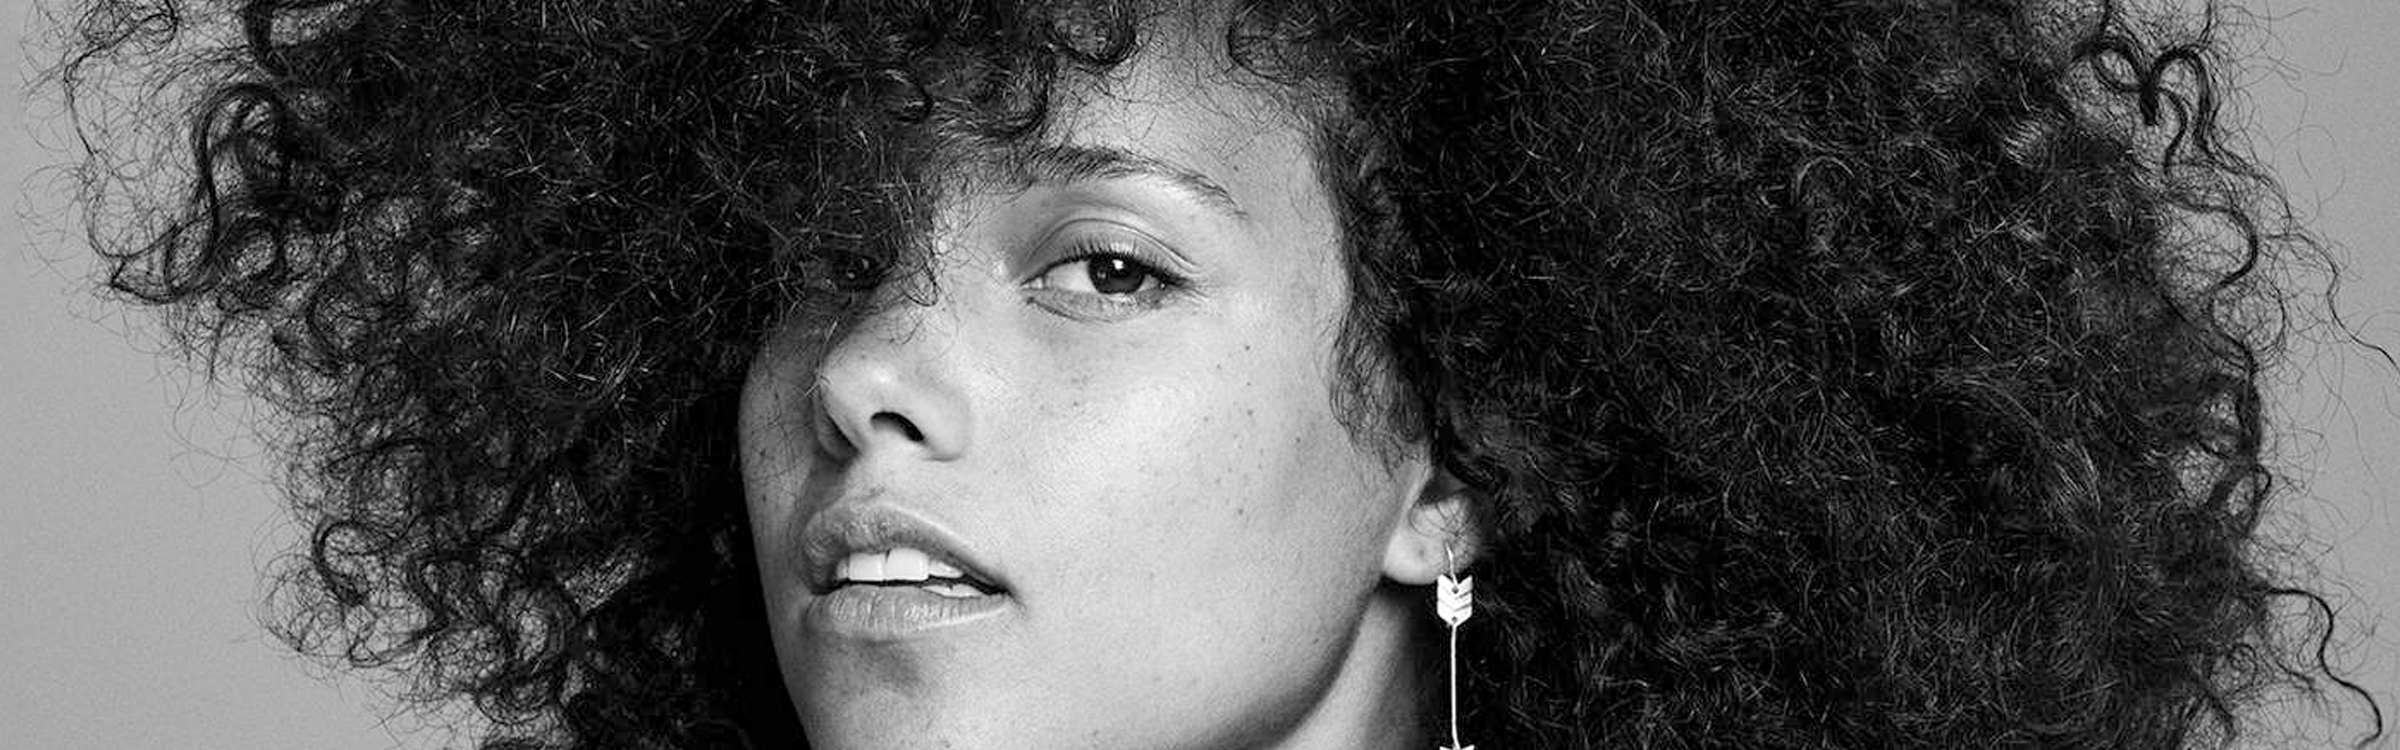 Header alicia keys